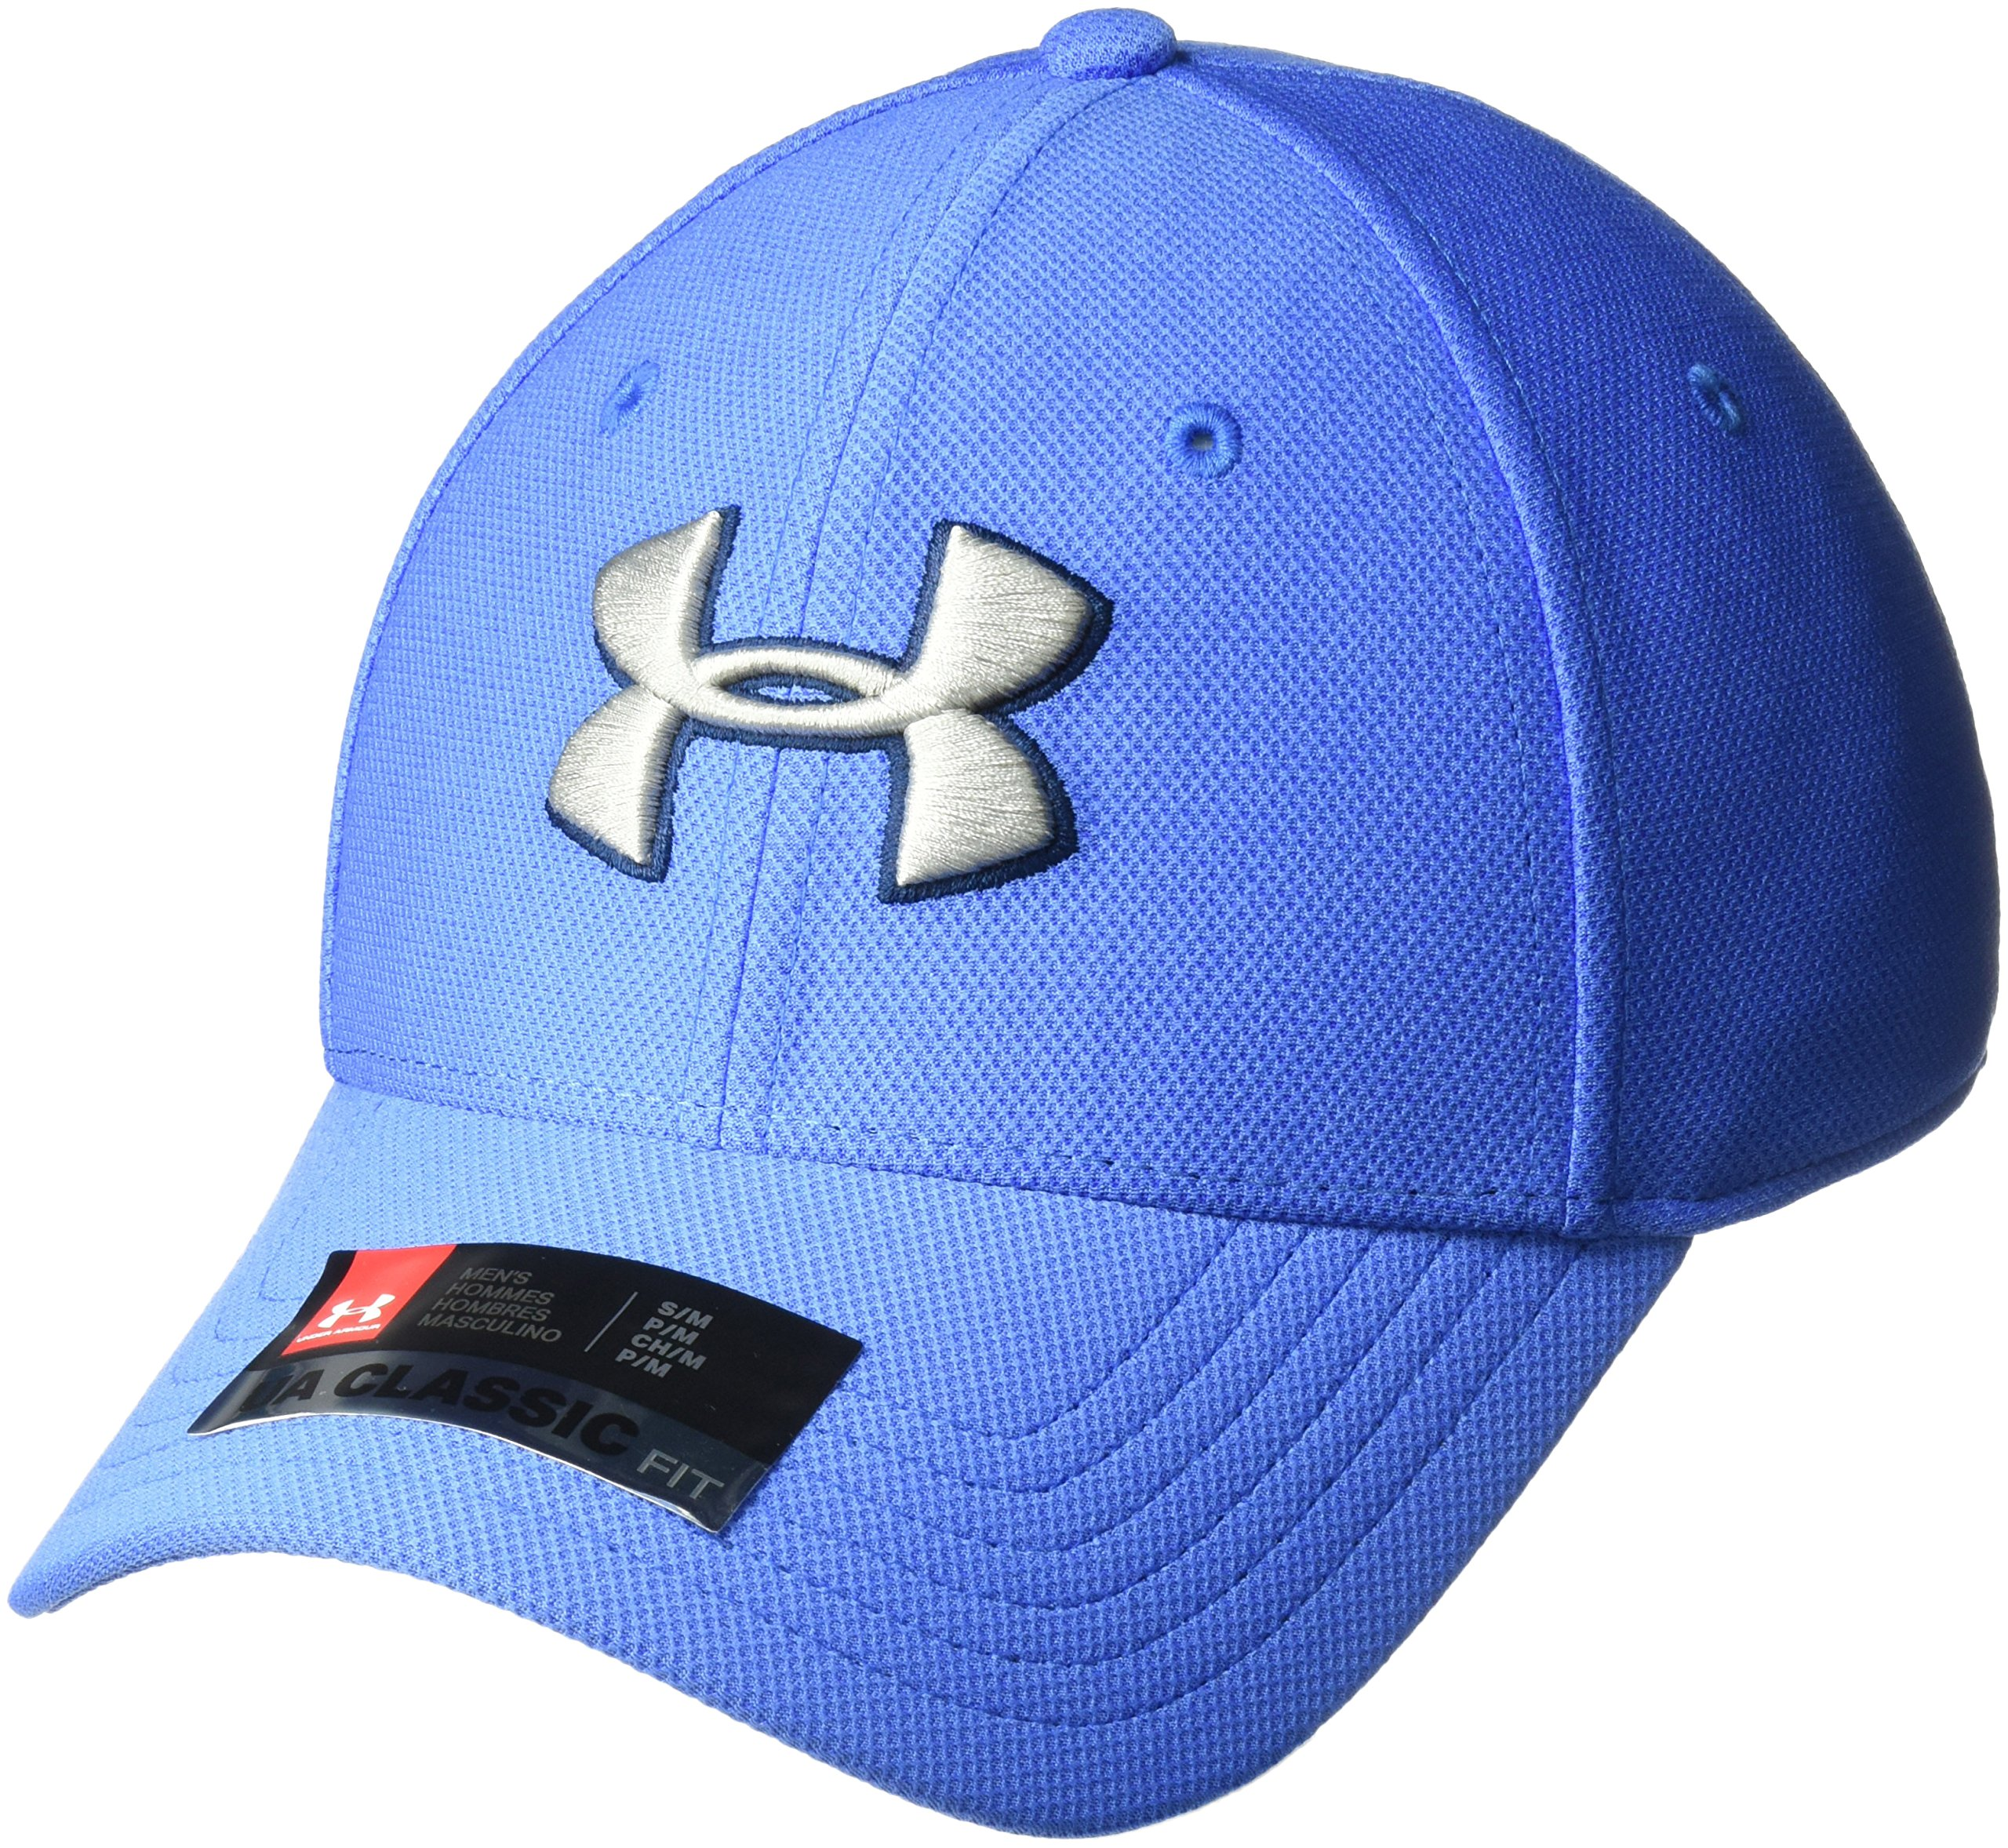 Under Armour Men's Blitzing 3.0 Cap, Mediterranean (437)/Tin, Medium/Large